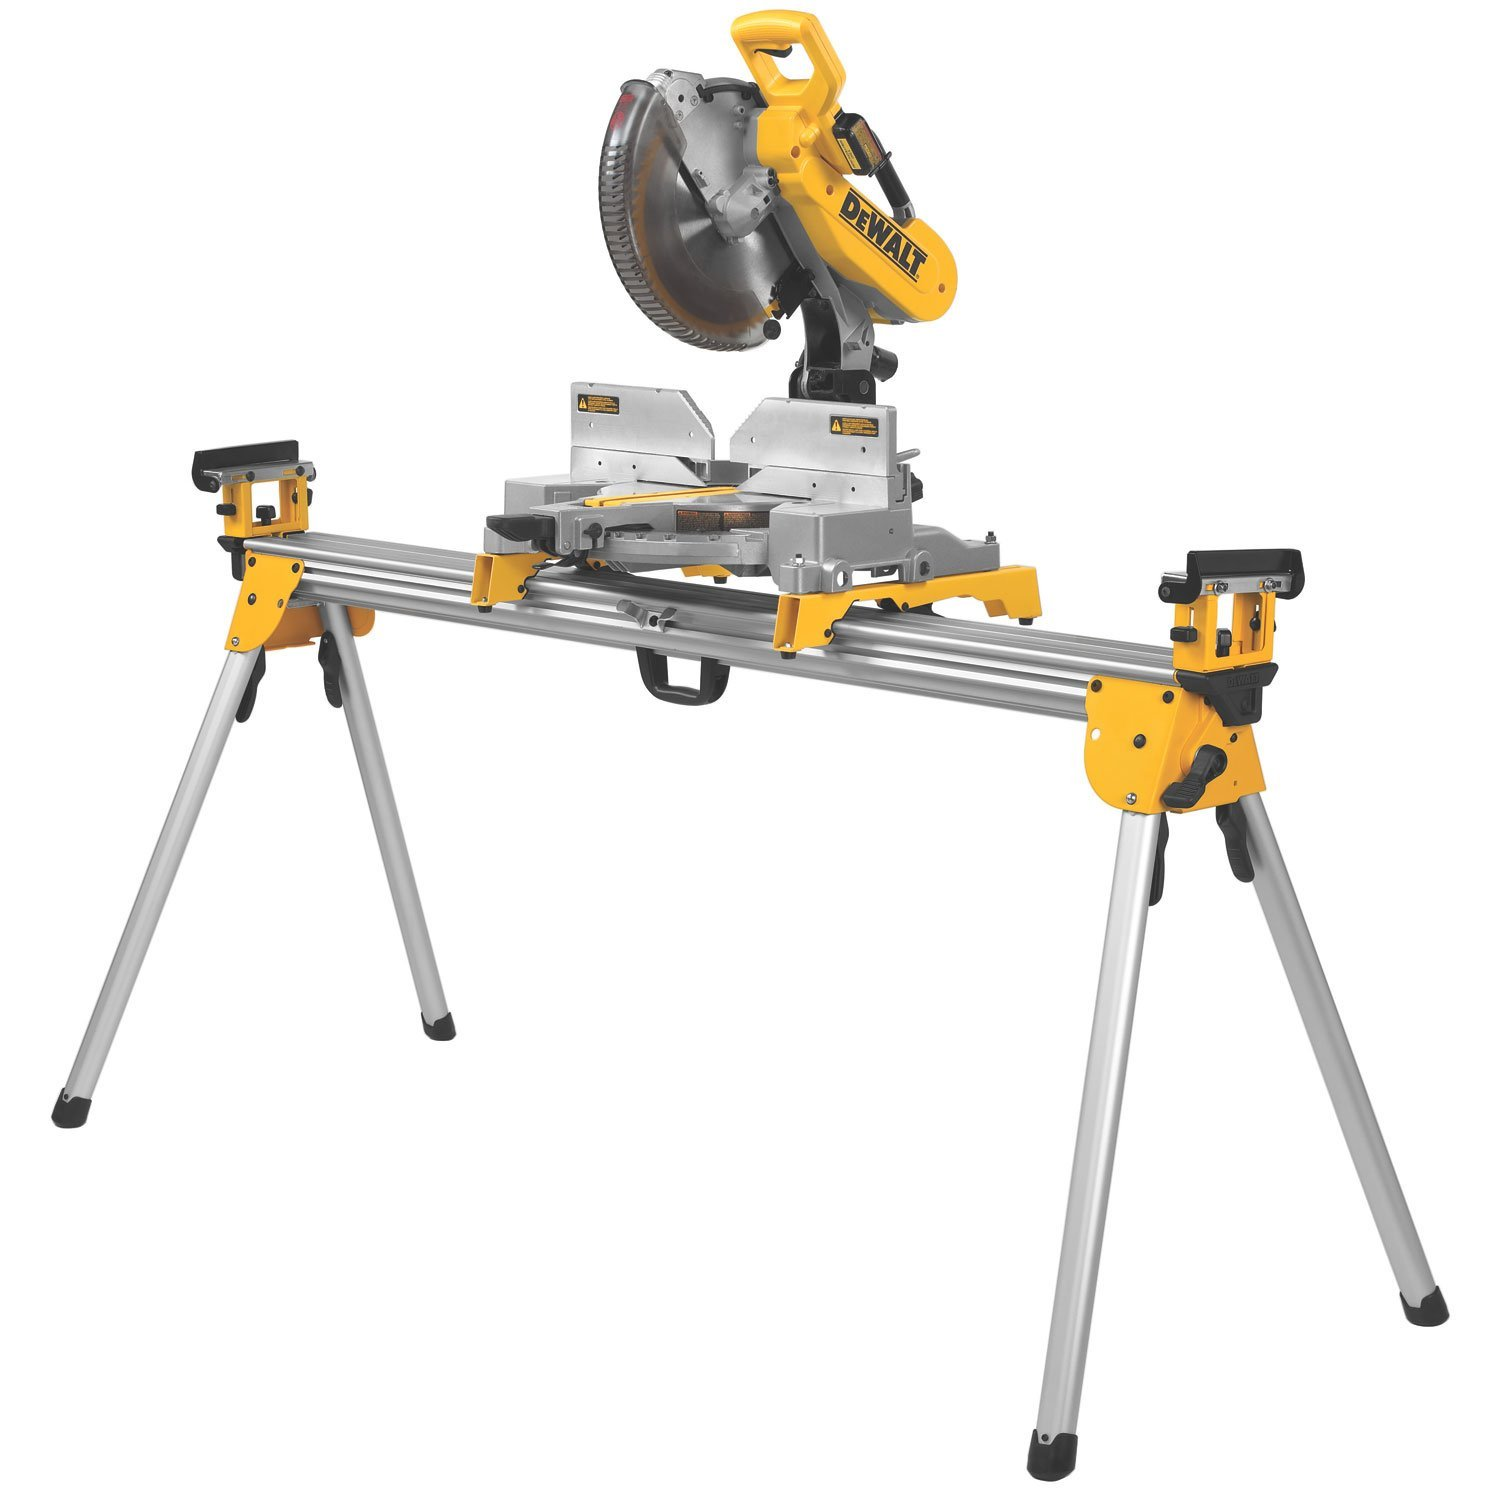 The Best Dewalt Dwx723 Heavy Duty Miter Saw Stand Review